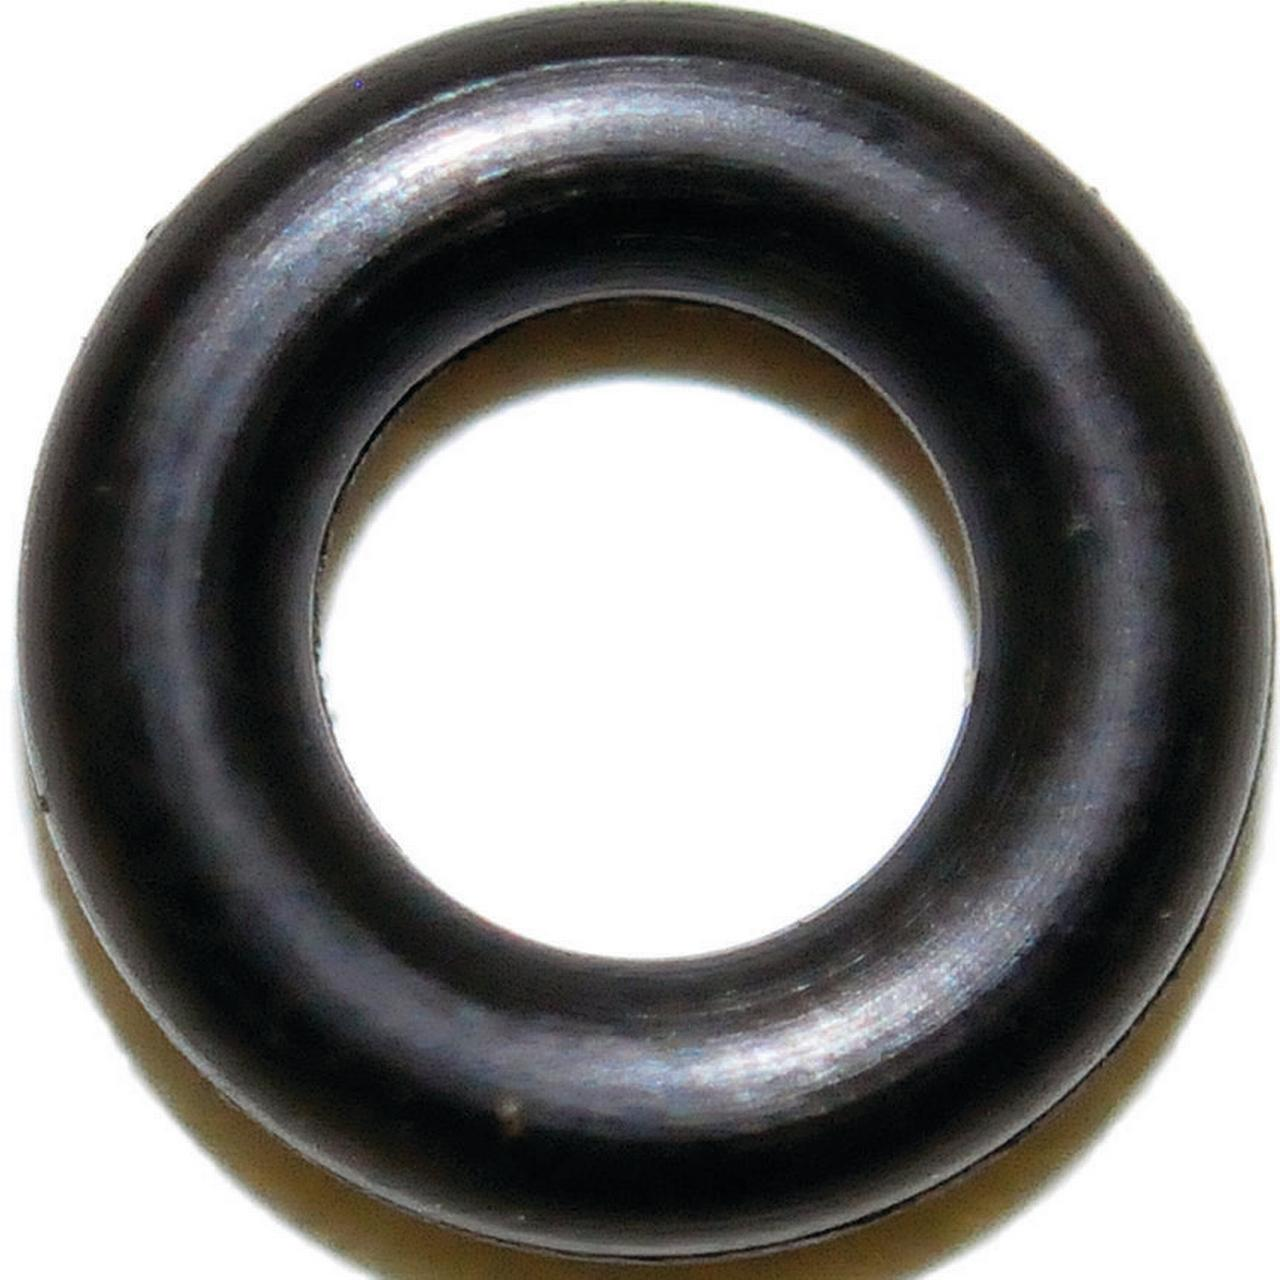 Danco 35775B Faucet O-Ring, For Use With Various Faucets, Buna-N, Black